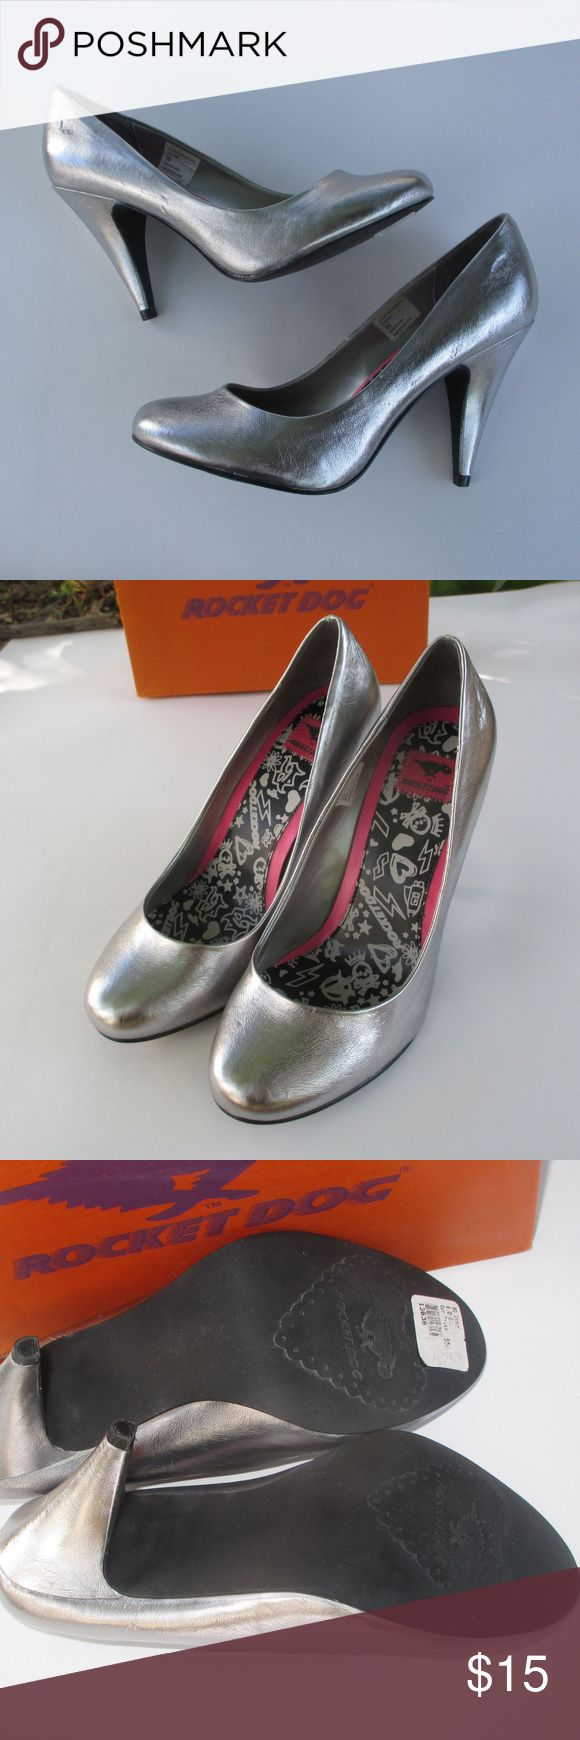 """Rocket Dog 8 Silver Heels Metallic Faux Leather Embossed Rocket Dog logo near heel - very cute!   Classic style pumps with a rounded, closed toe.   Heels are just under 4"""".  Very good condition, original box is included. Rocket Dog Shoes Heels"""